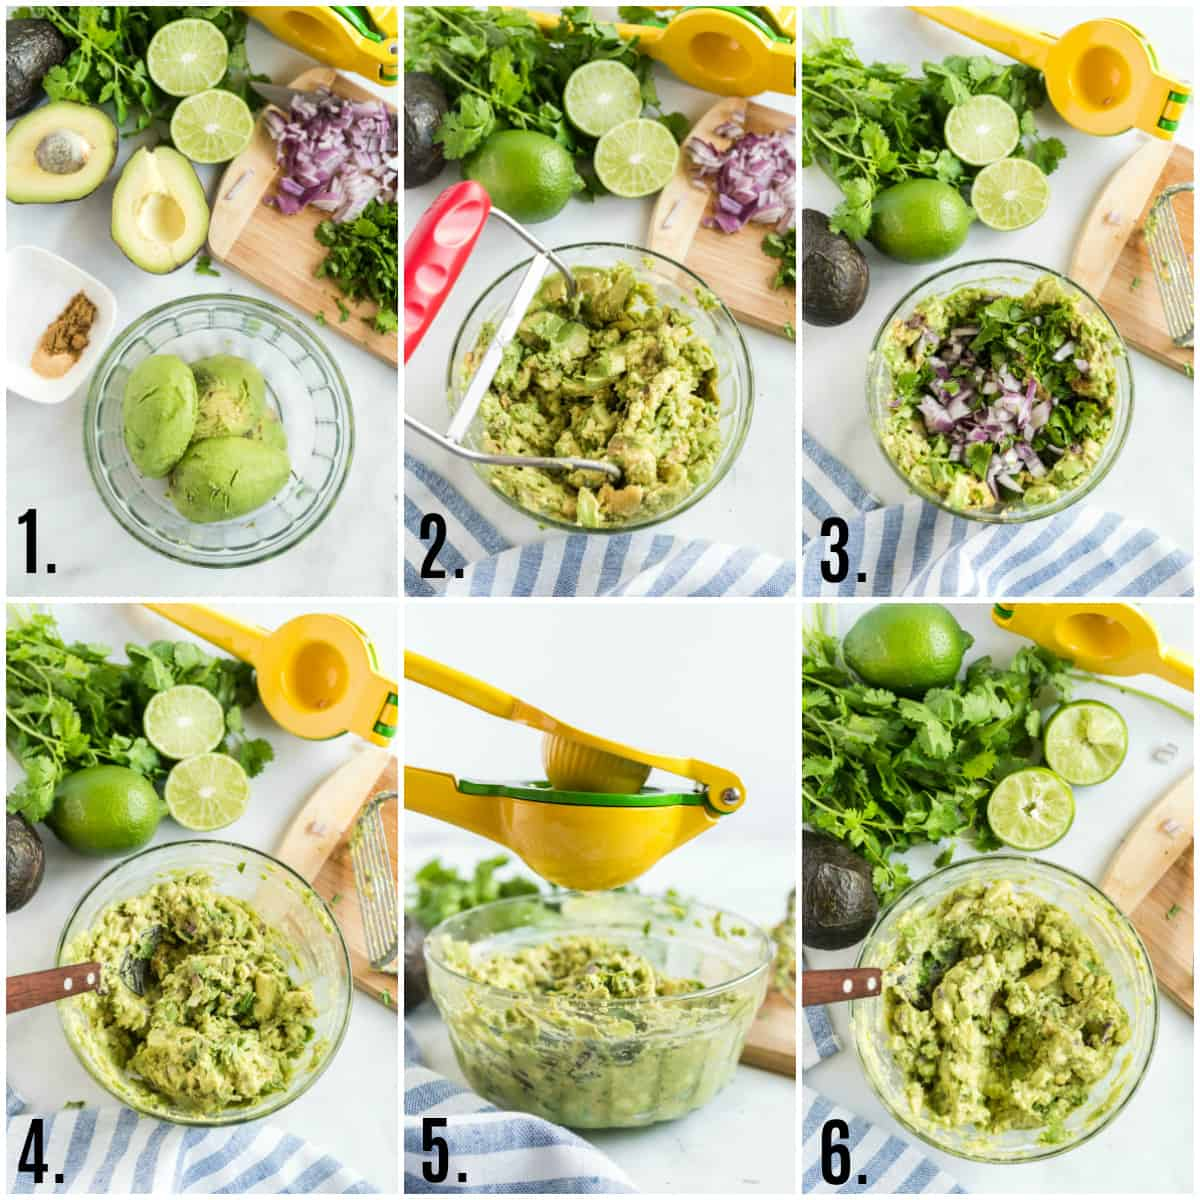 Step by step photos on how to make easy guacamole